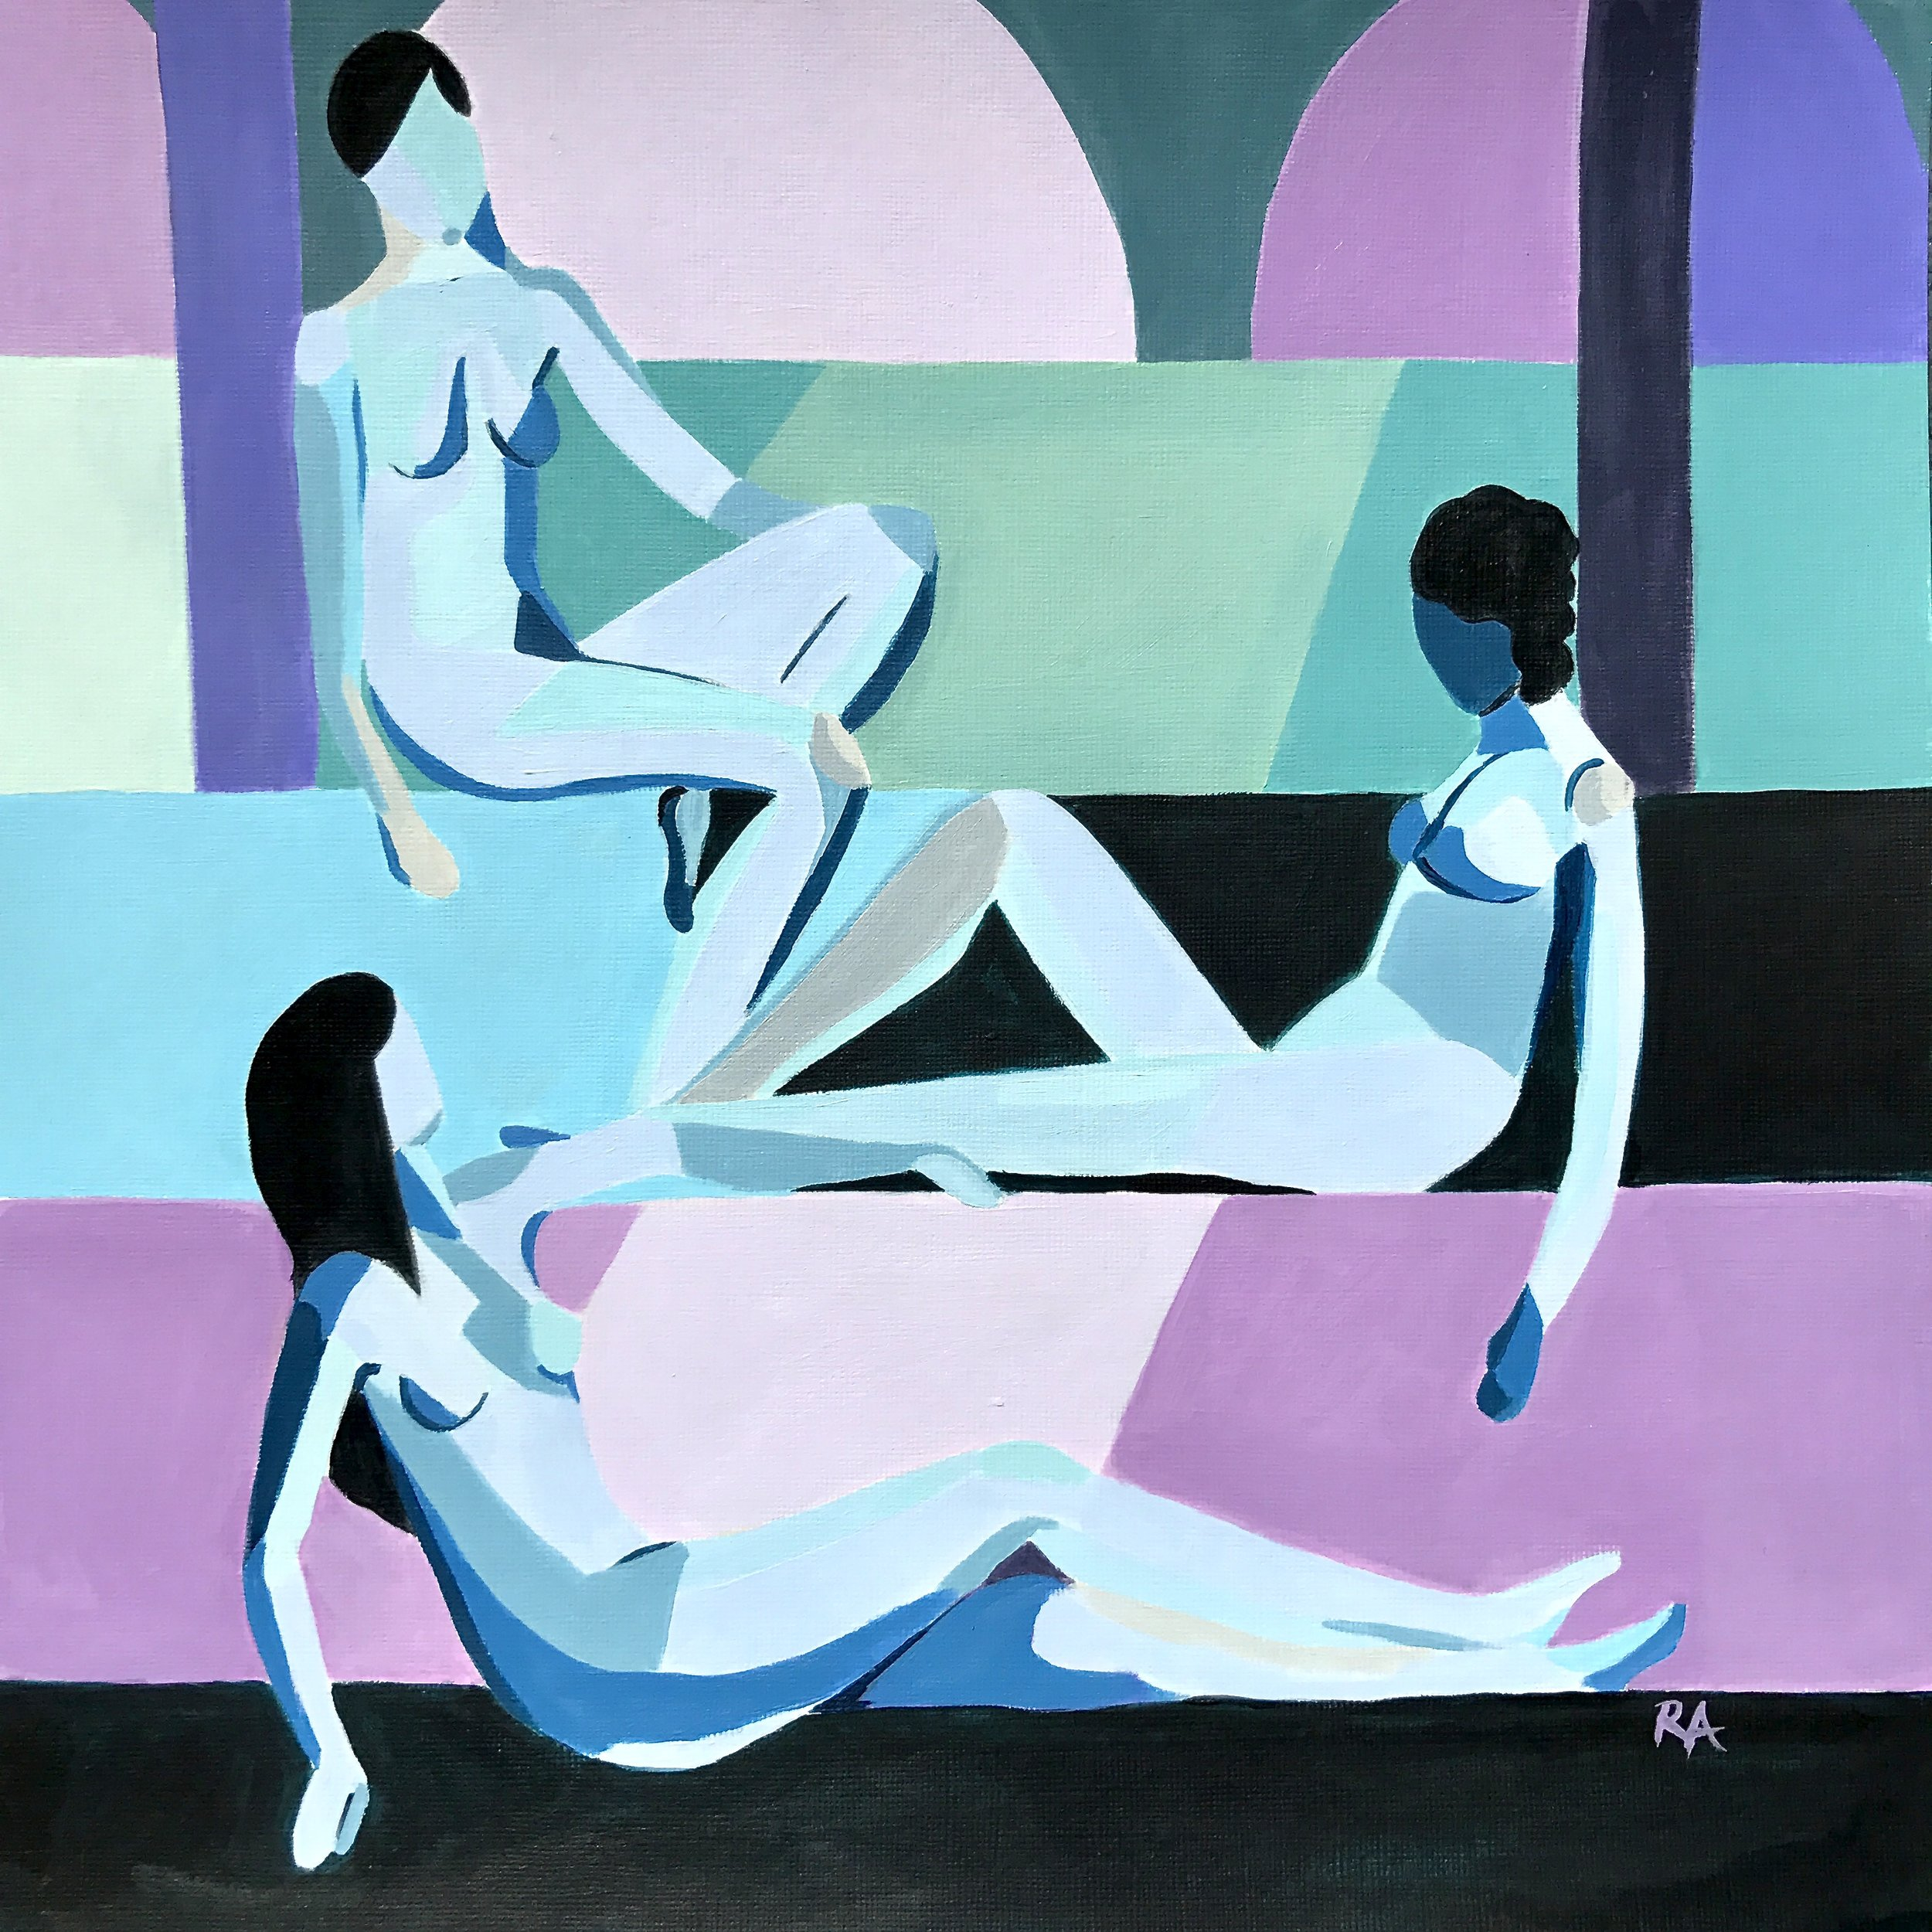 The Atrium  - Three nudes casually planning world domination12x12 inches, $125